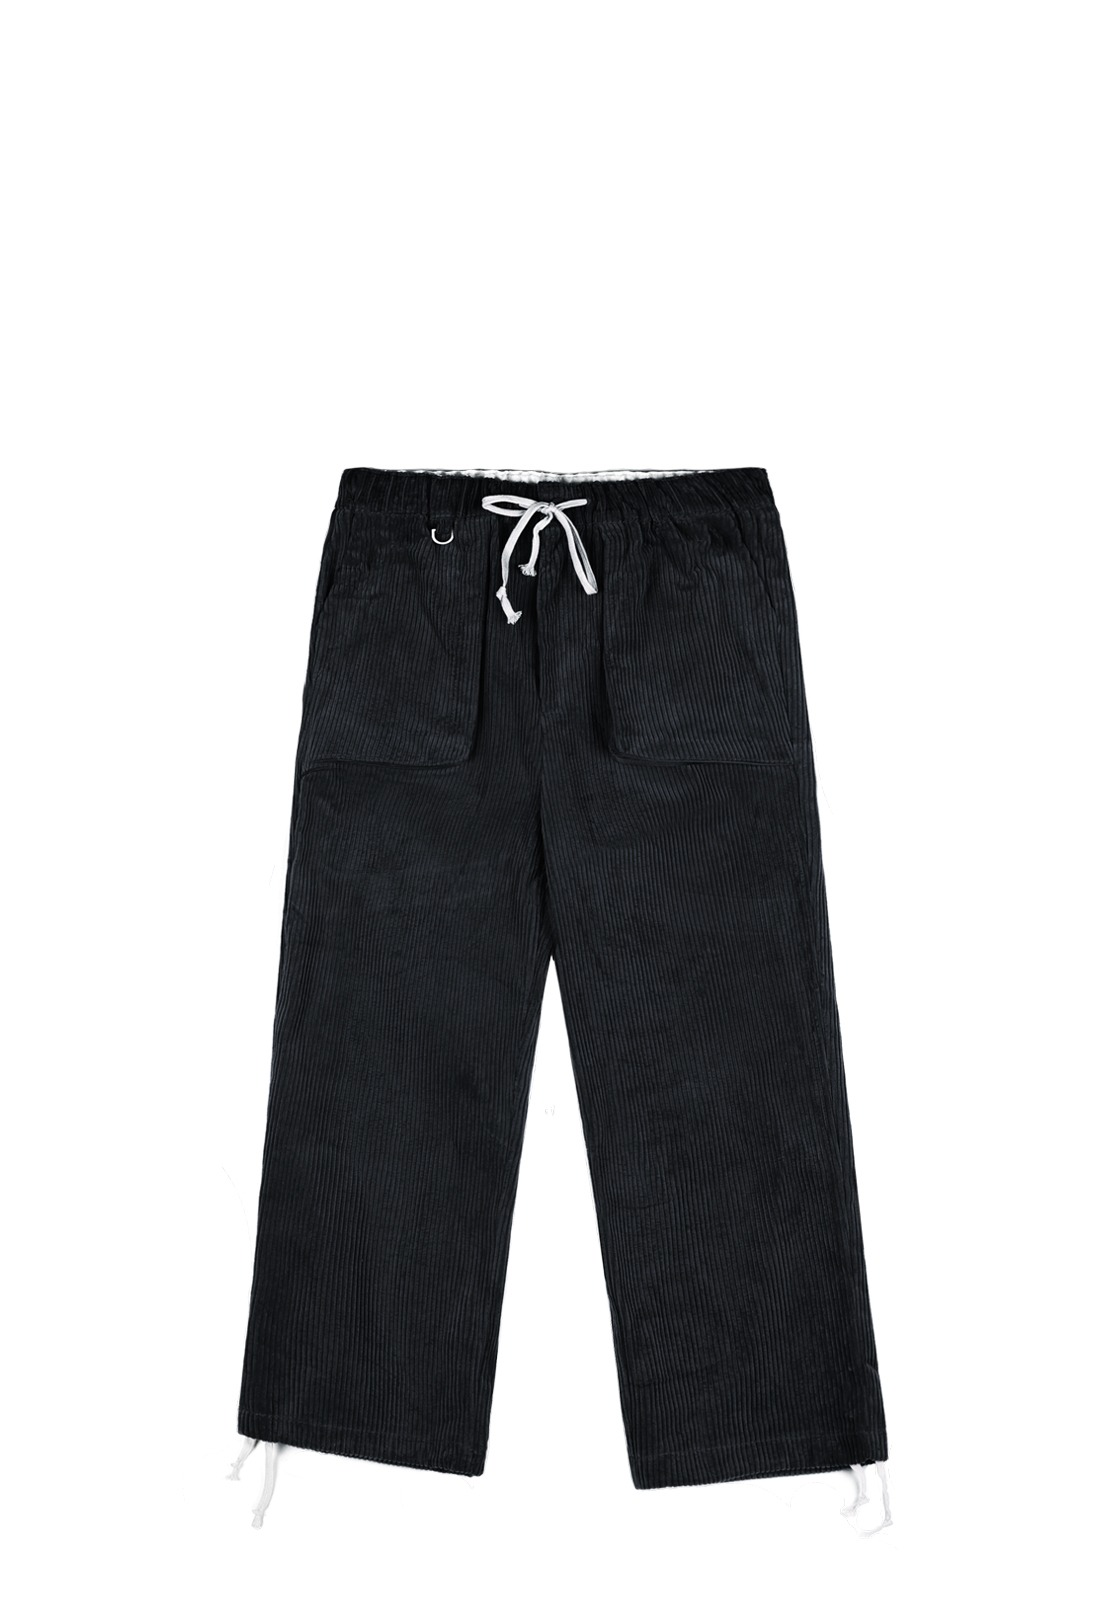 V255 SOLID CORDUROY WIDE PANTS  BLACK